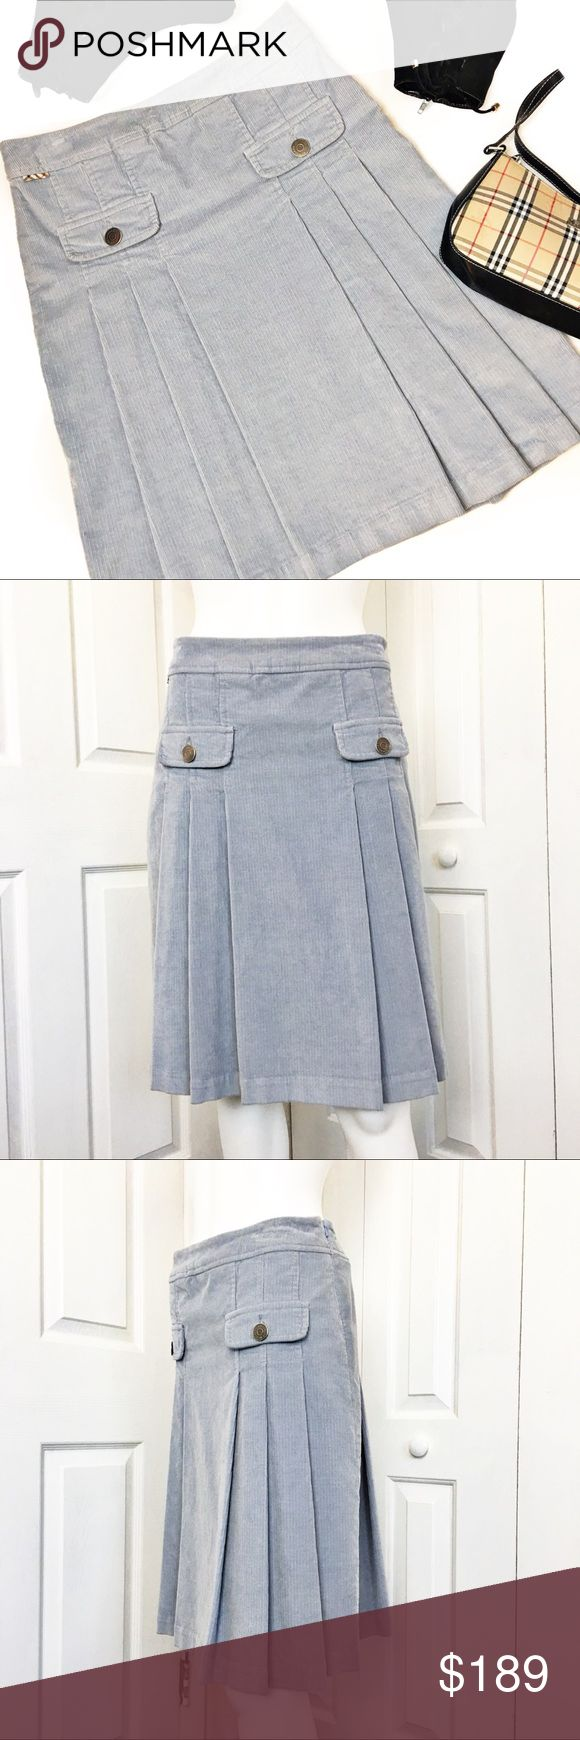 """Burberry Pleated Corduroy Skirt Make a statement in this authentic Burberry corduroy Skirt.  Light blue in color.  Features two false pockets on the front with Burberry embossed button and side zip closure.  Skirt is in pristine condition.  Fully lined.  Care tag was cut but this is dry clean only.  Purchased at the Burberry store at the Tampa mall.  Material tag has been listed.   Measurements laid flat:  Waist:  16"""" Hip:  19"""" Length:  23"""" *Measurements are approximate. Burberry Skirts"""